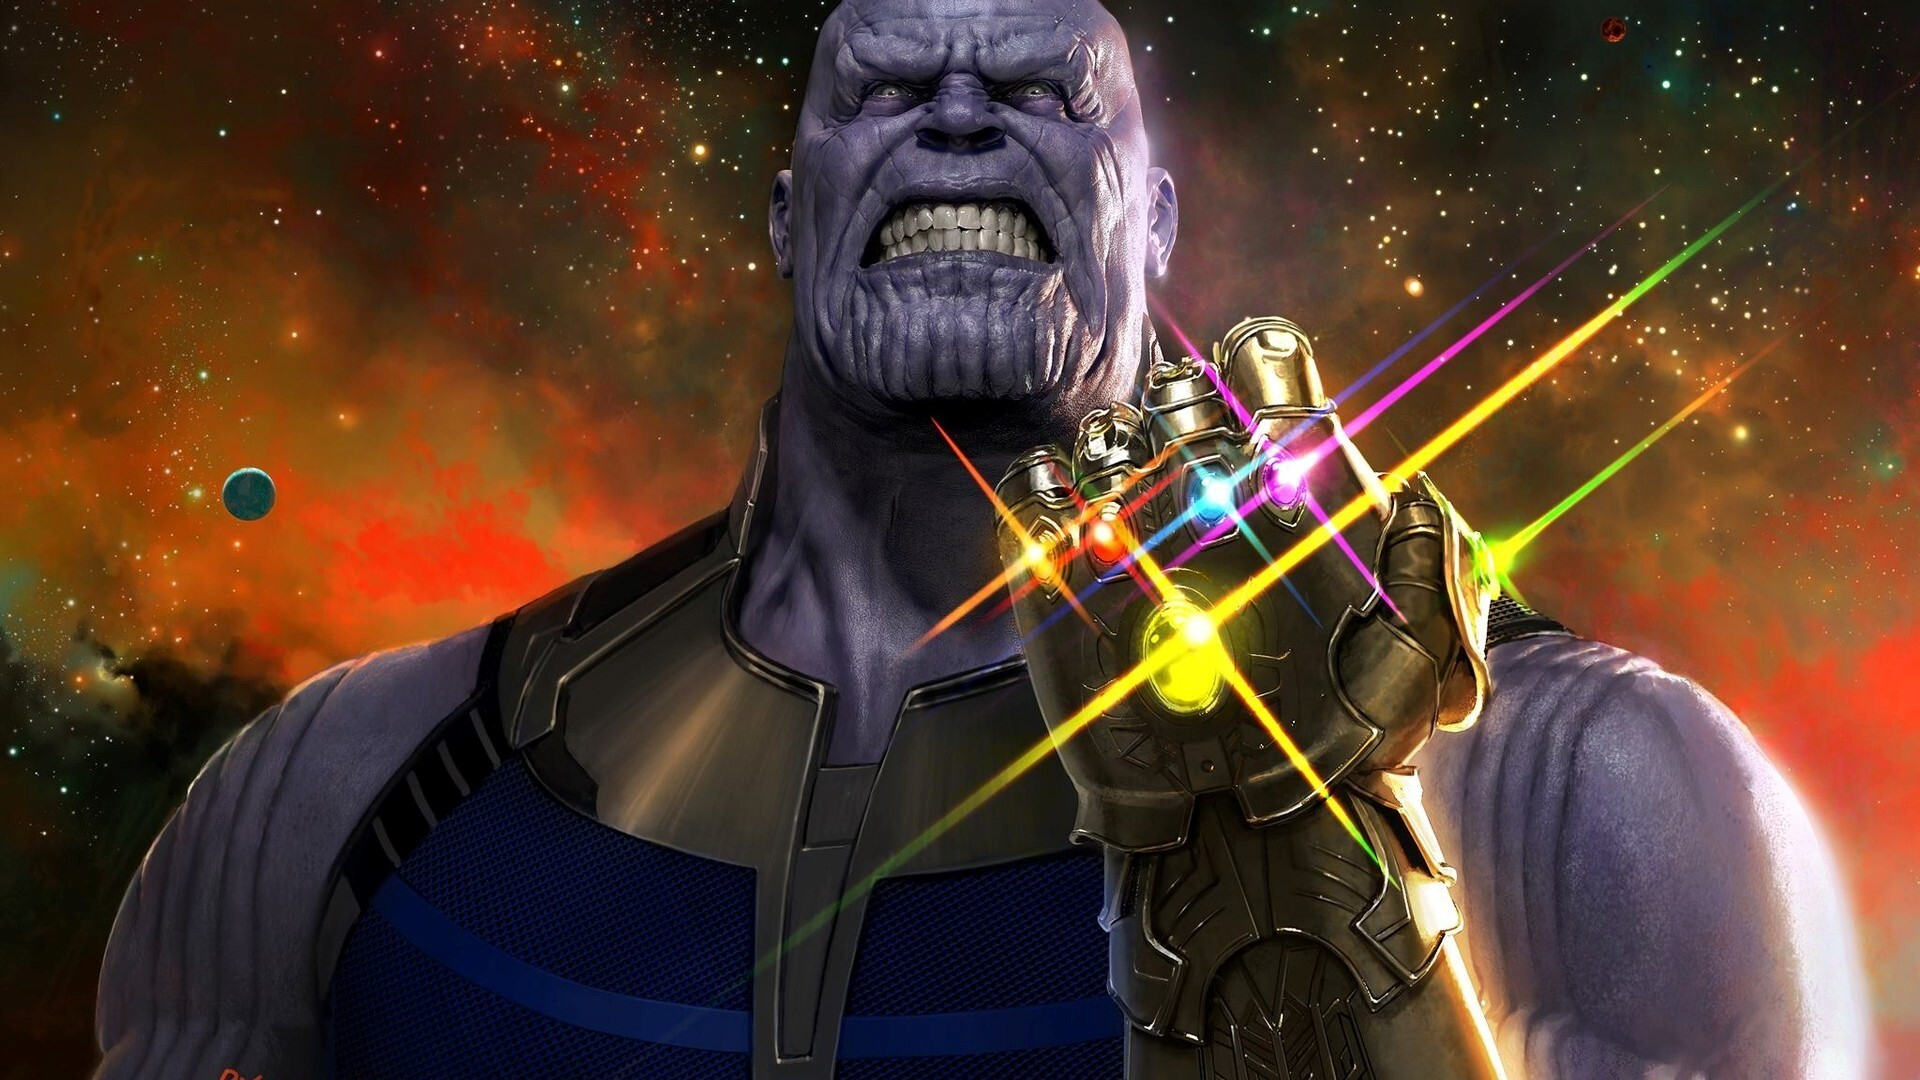 Thanos In Avengers Infinity War Movie Wallpaper Hd Wallpapers